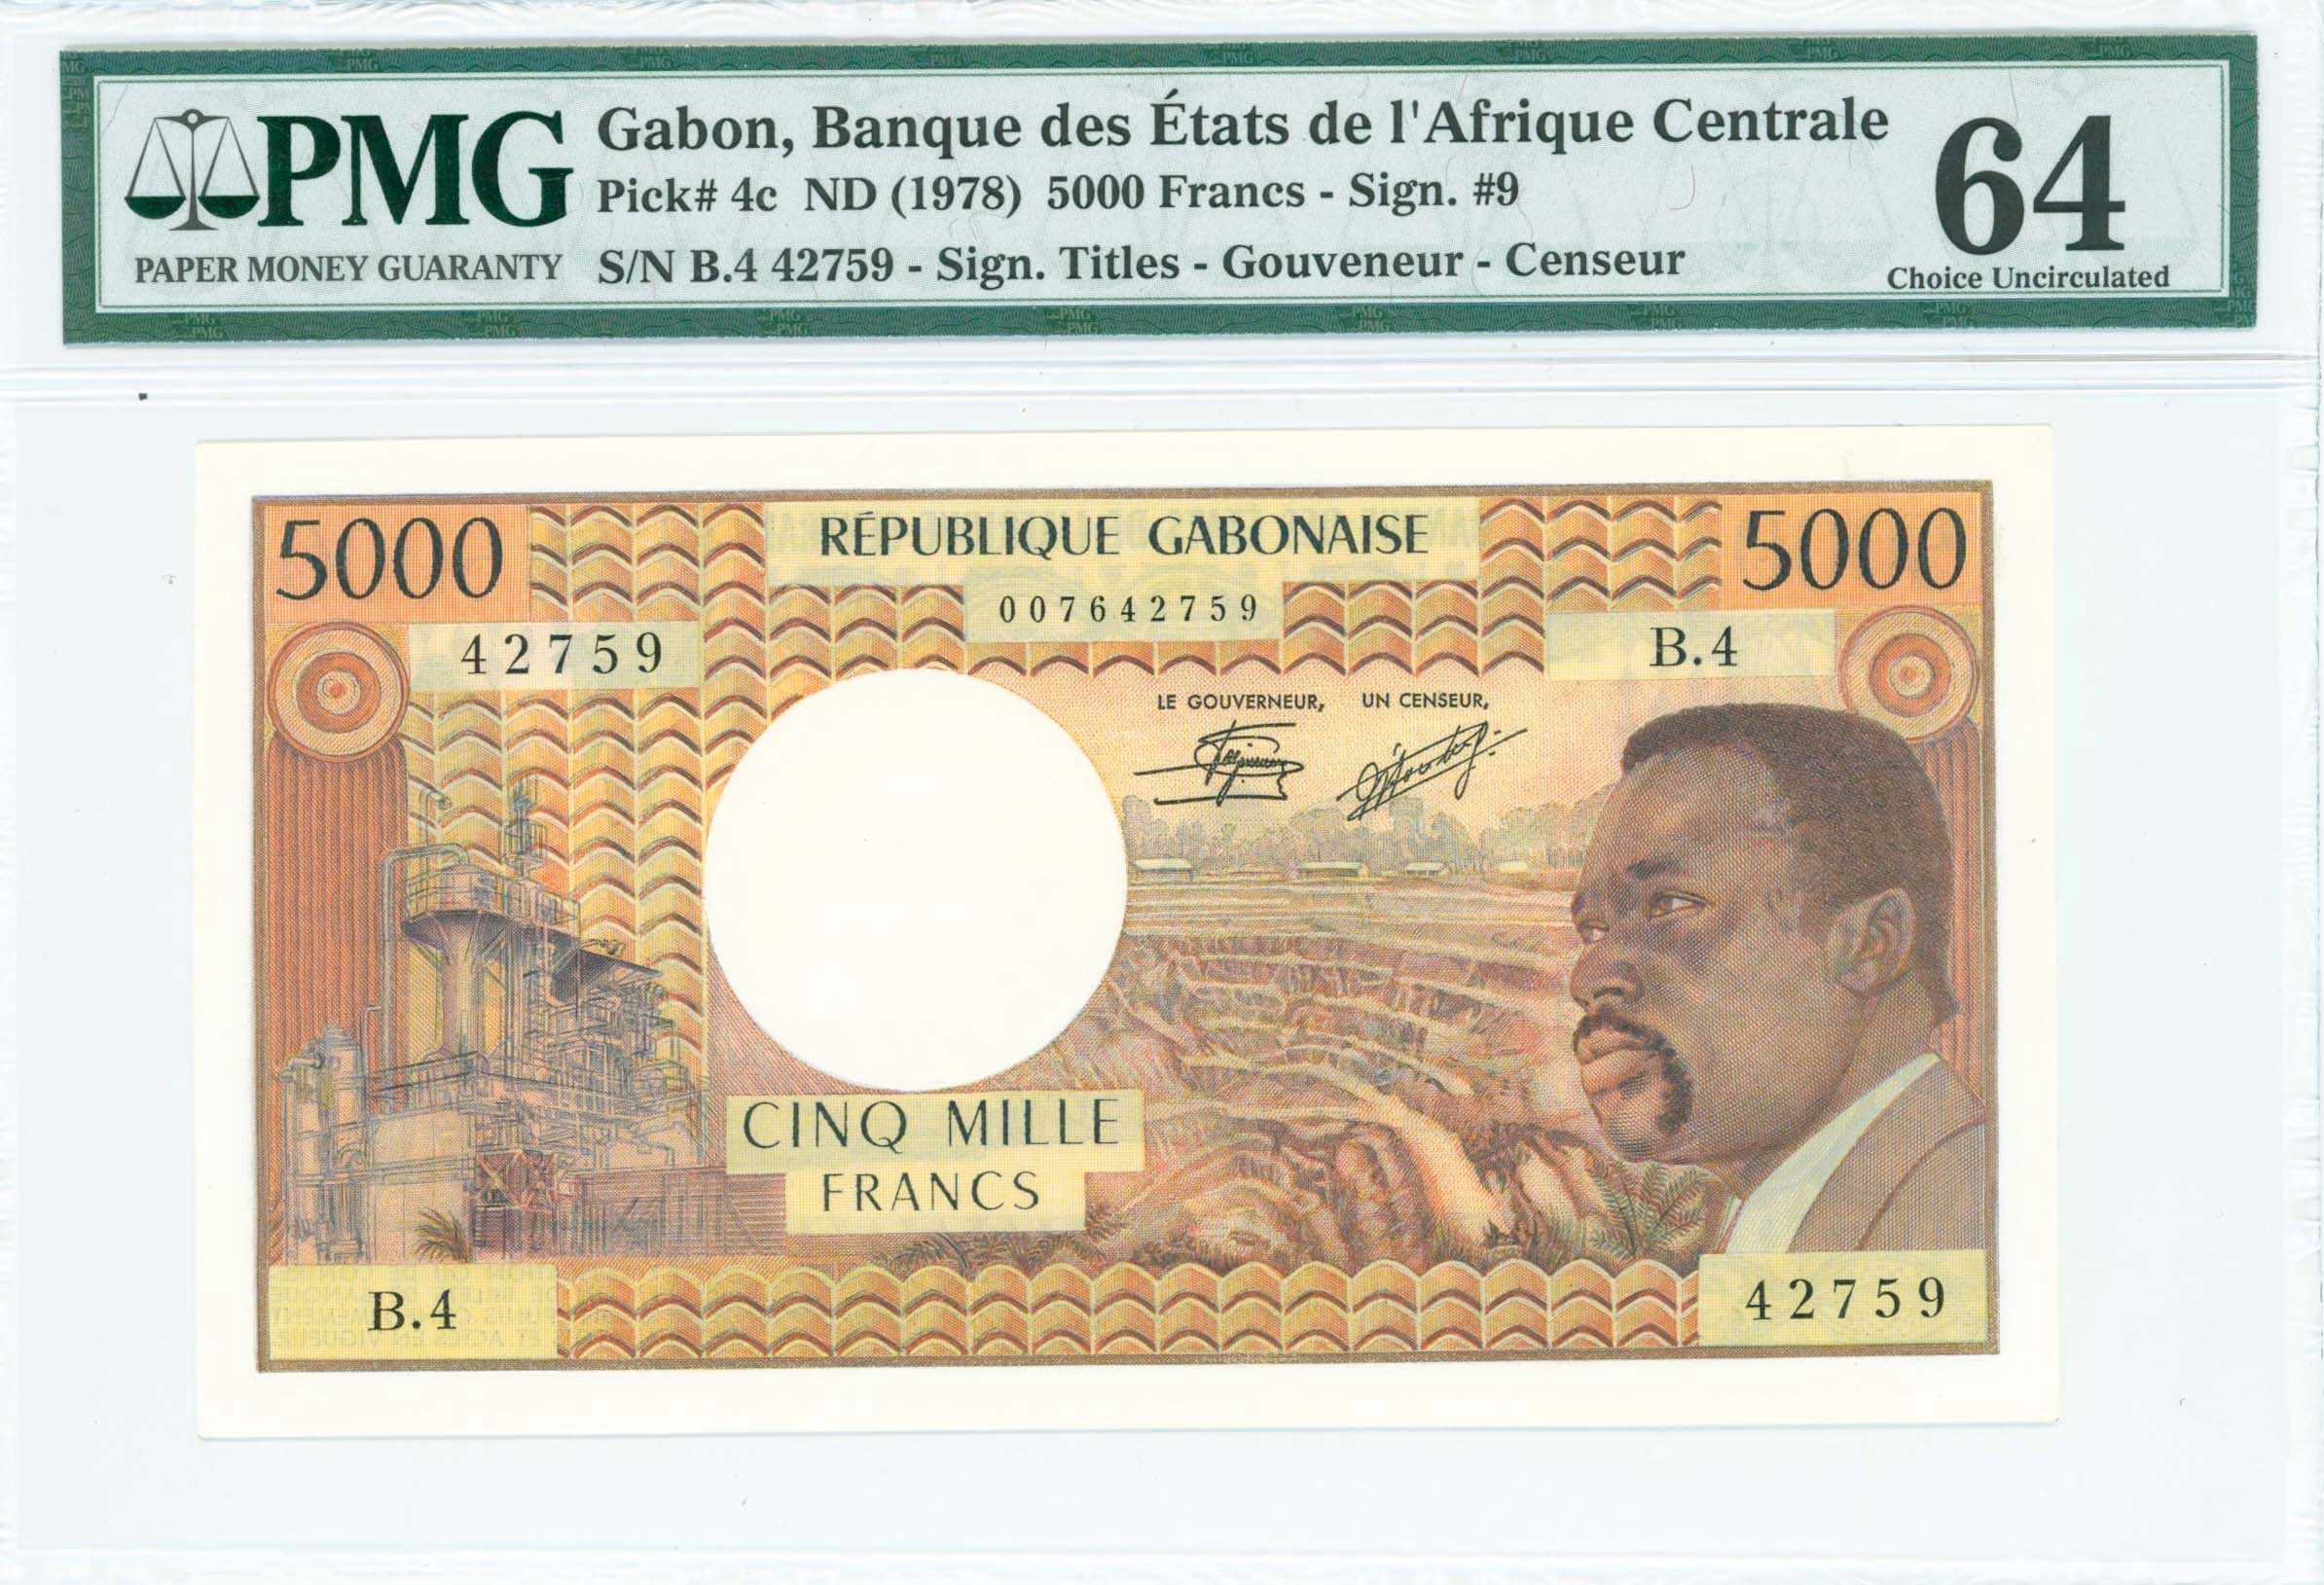 Lot 7367 - -  PAPER MONEY - BANKNOTES BANKNOTES OF AFRICAN COUNTRIES -  A. Karamitsos Public & Live Internet Auction 671 (Part B)